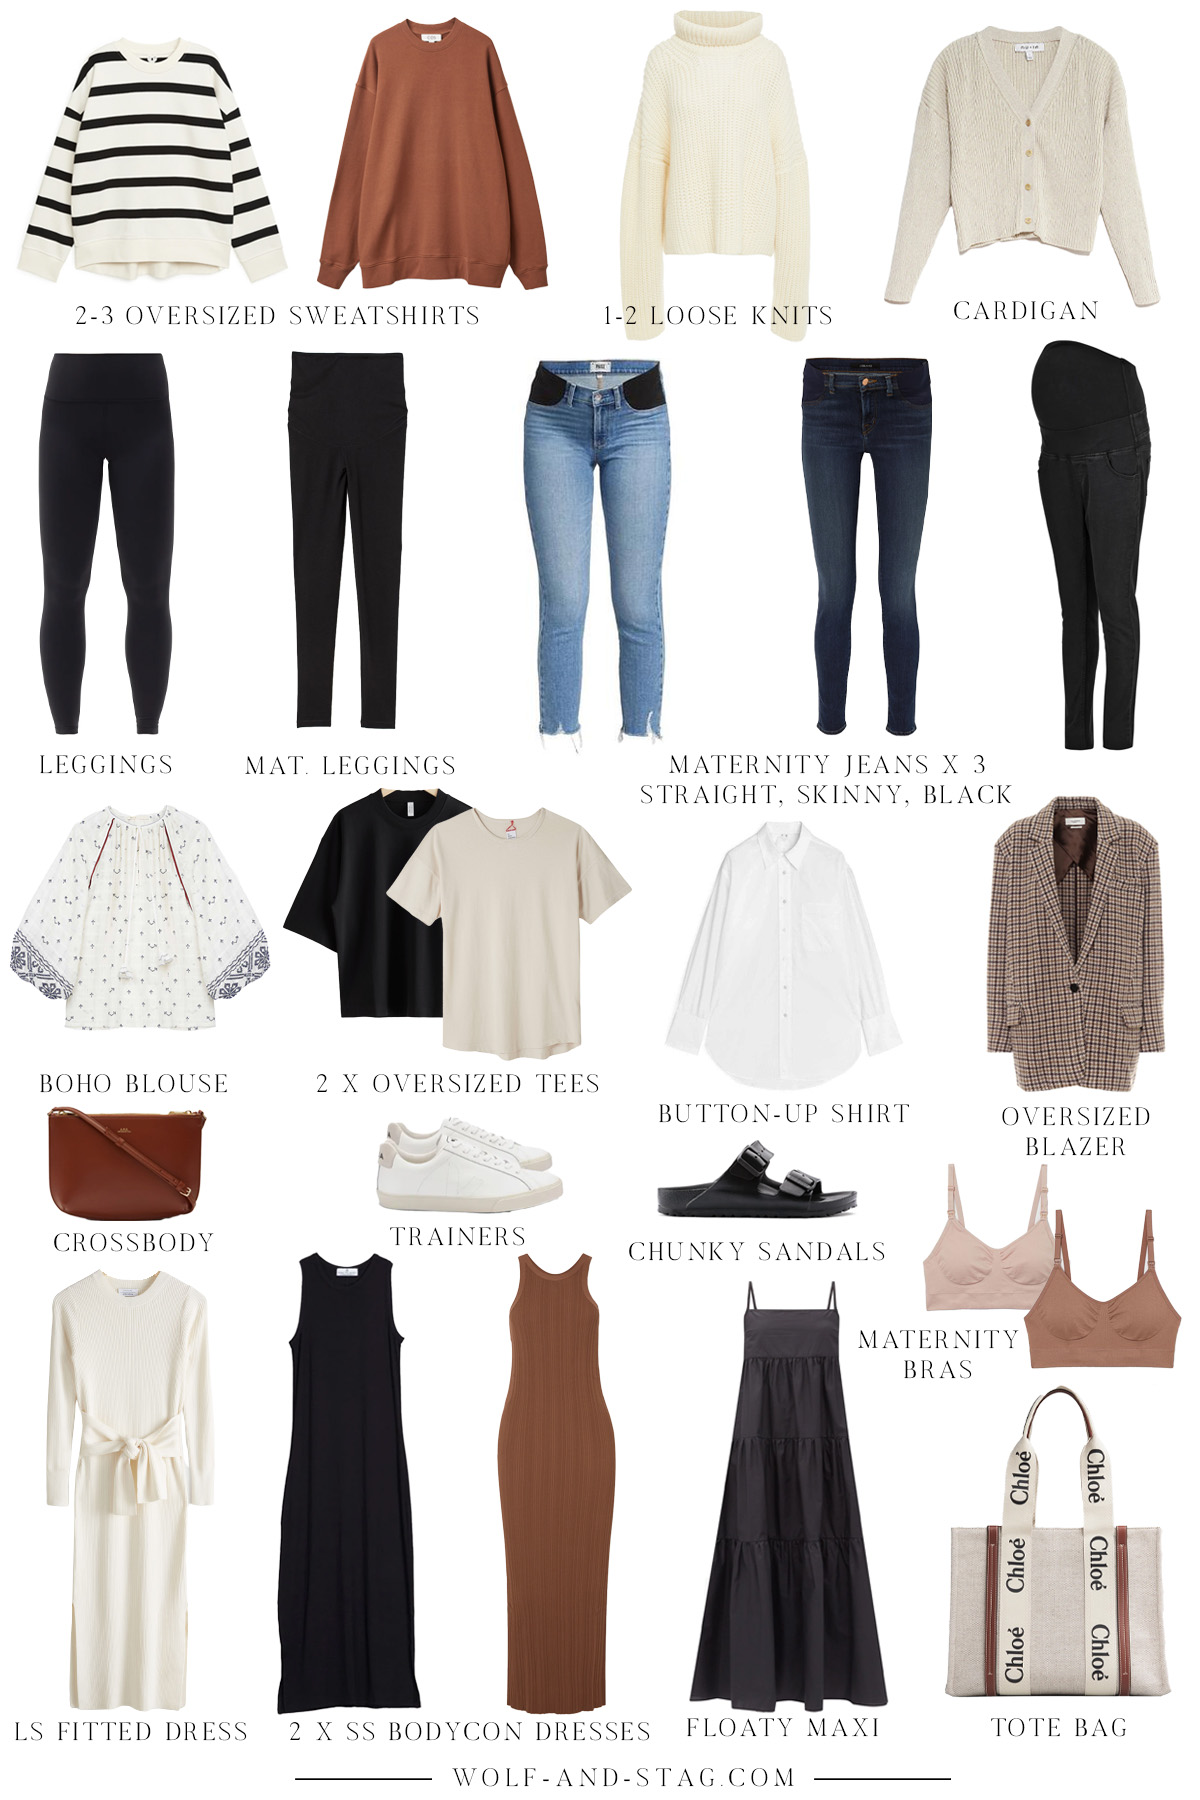 A mostly sustainable, neutral, mid-season pregnancy capsule wardrobe, featuring mostly all non-maternity clothing items, in shades of warm brown, black, and neutral   W&S